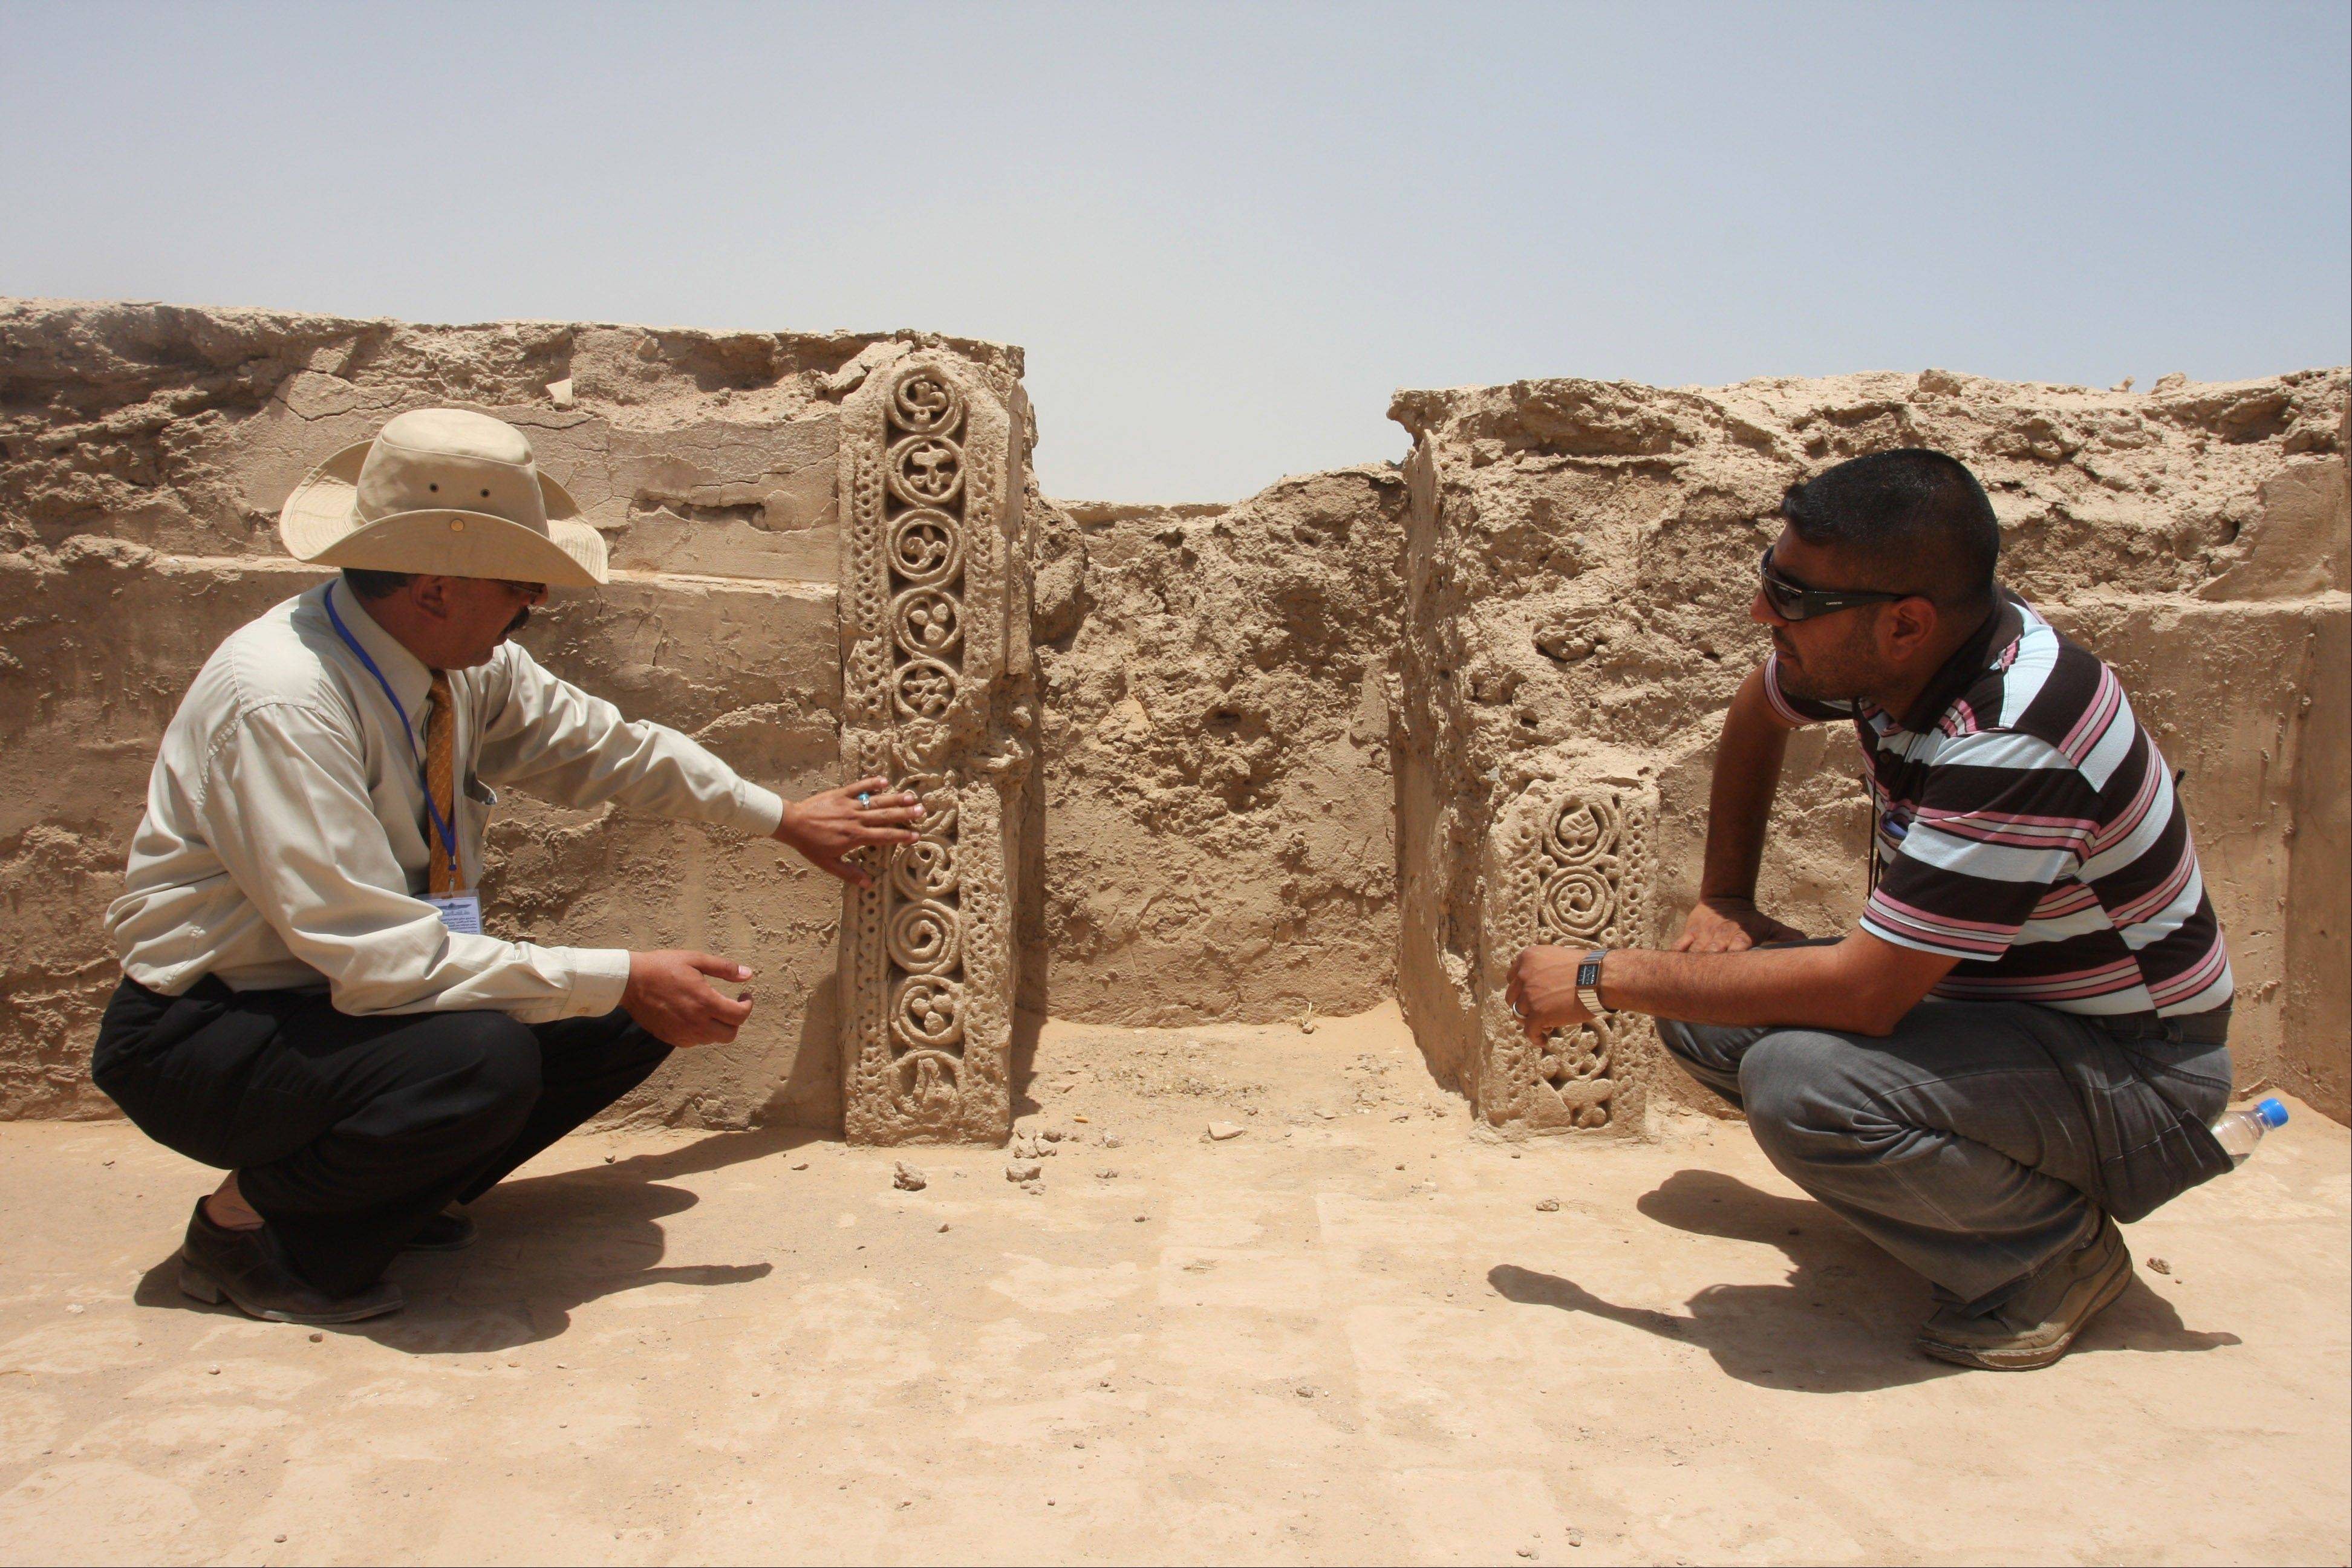 Archaeologists look at ruins that scholars think may be from the legendary Arab Christian city of Hira in Iraq on July 10.